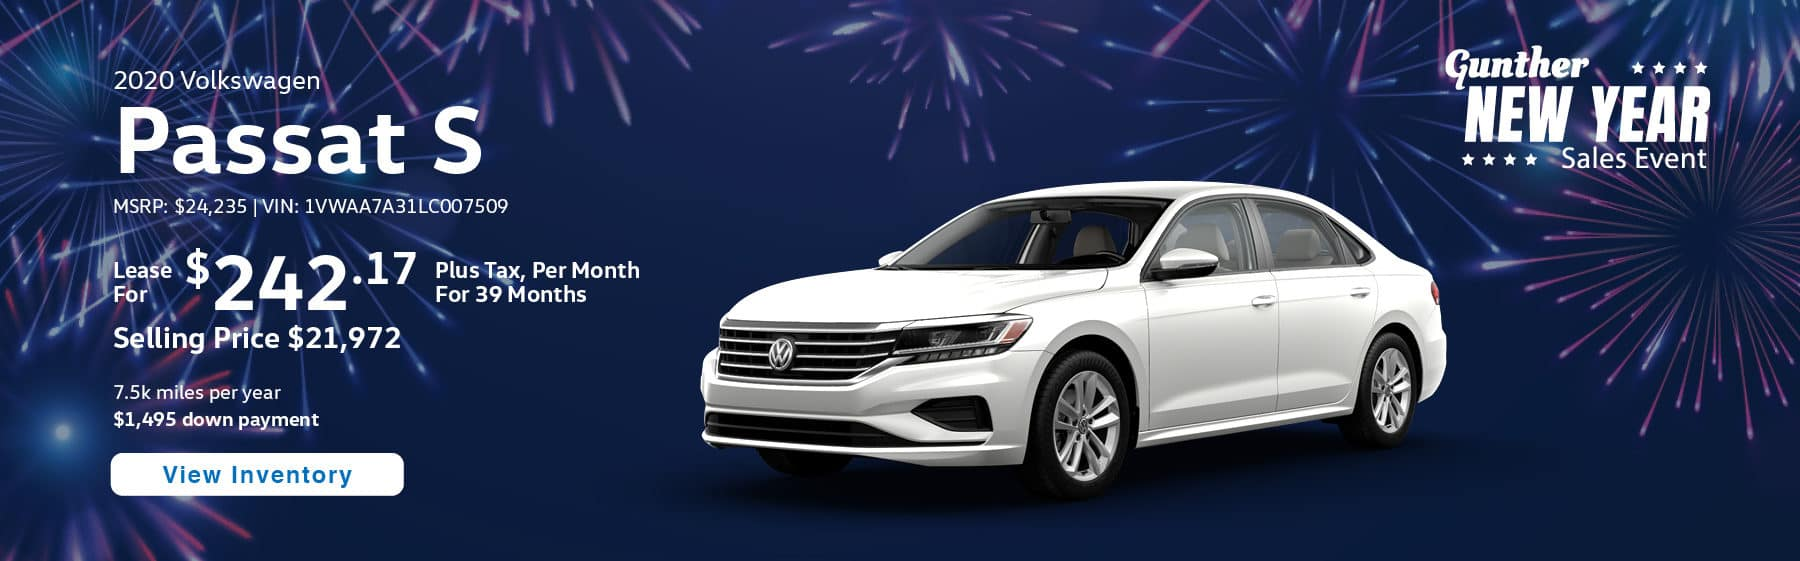 Lease the 2020 Passat S for $242.17 per month, plus tax for 39 months.